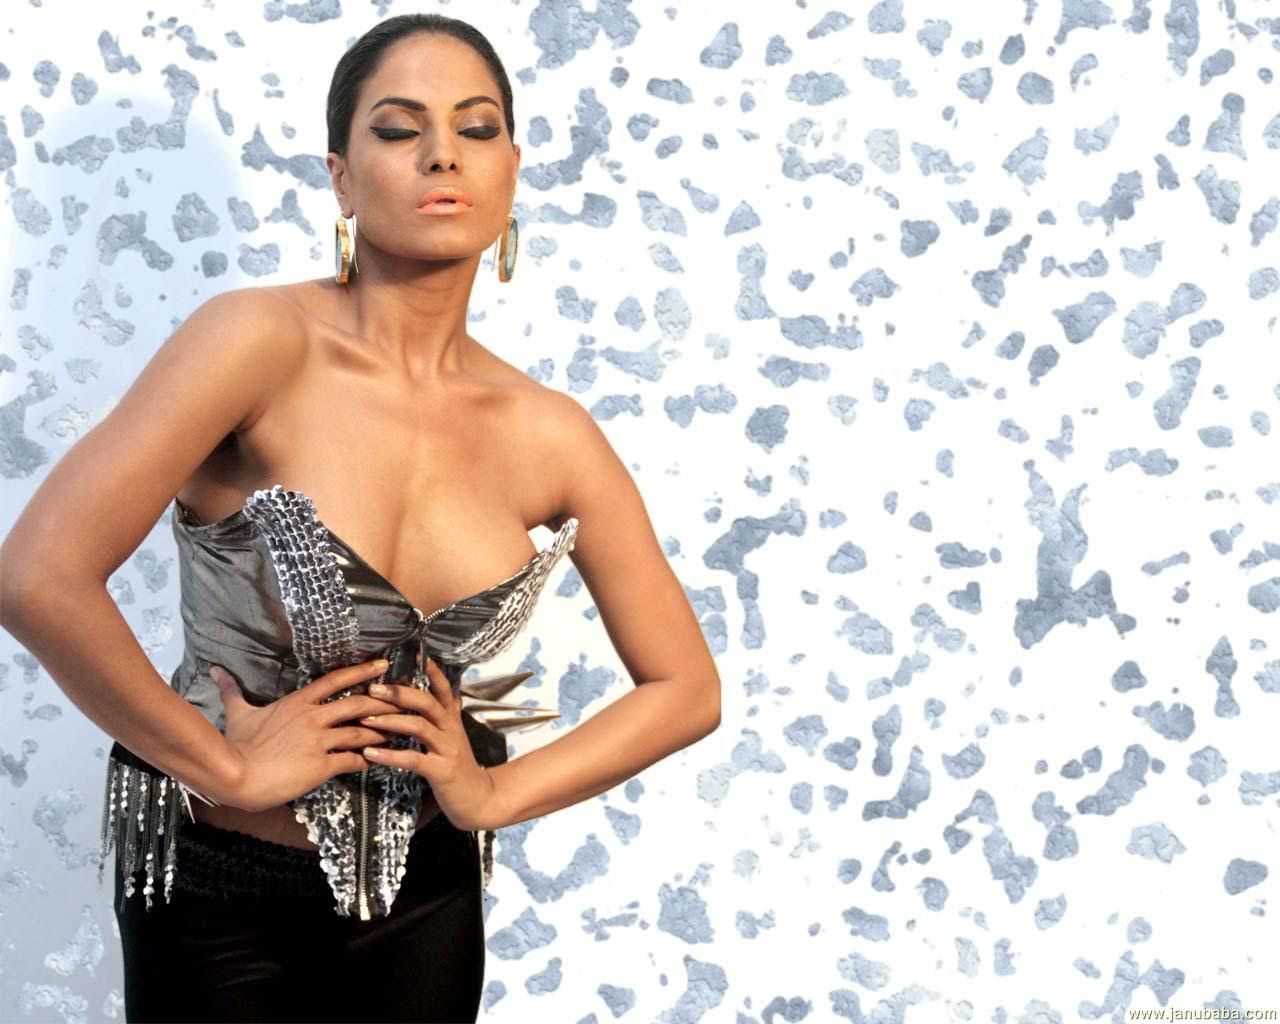 Veena Malik Refuses To Appear Nude For Playboy, Sun